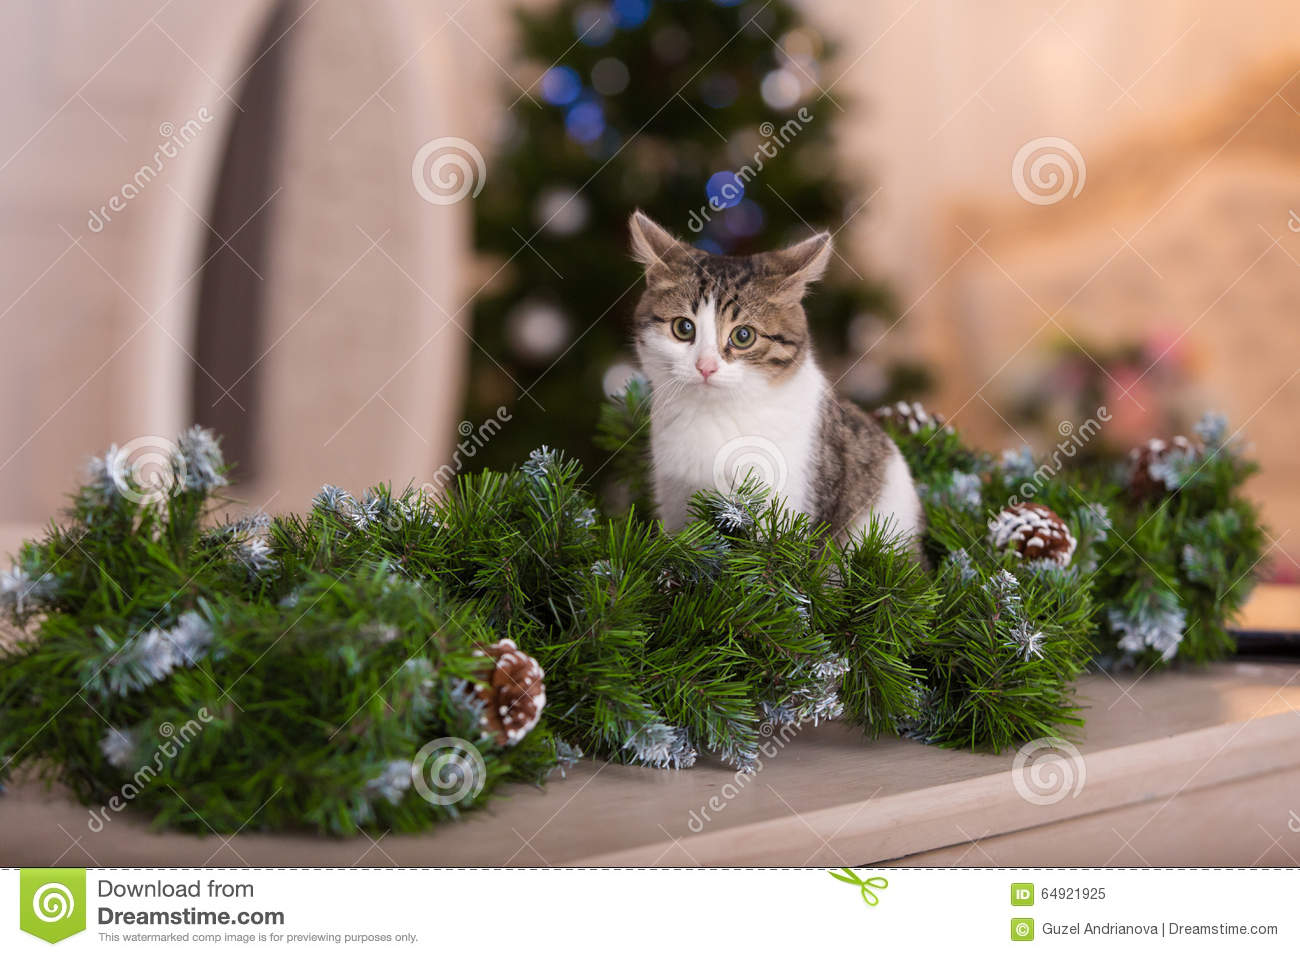 cat and christmas decorations - Cat Christmas Decorations